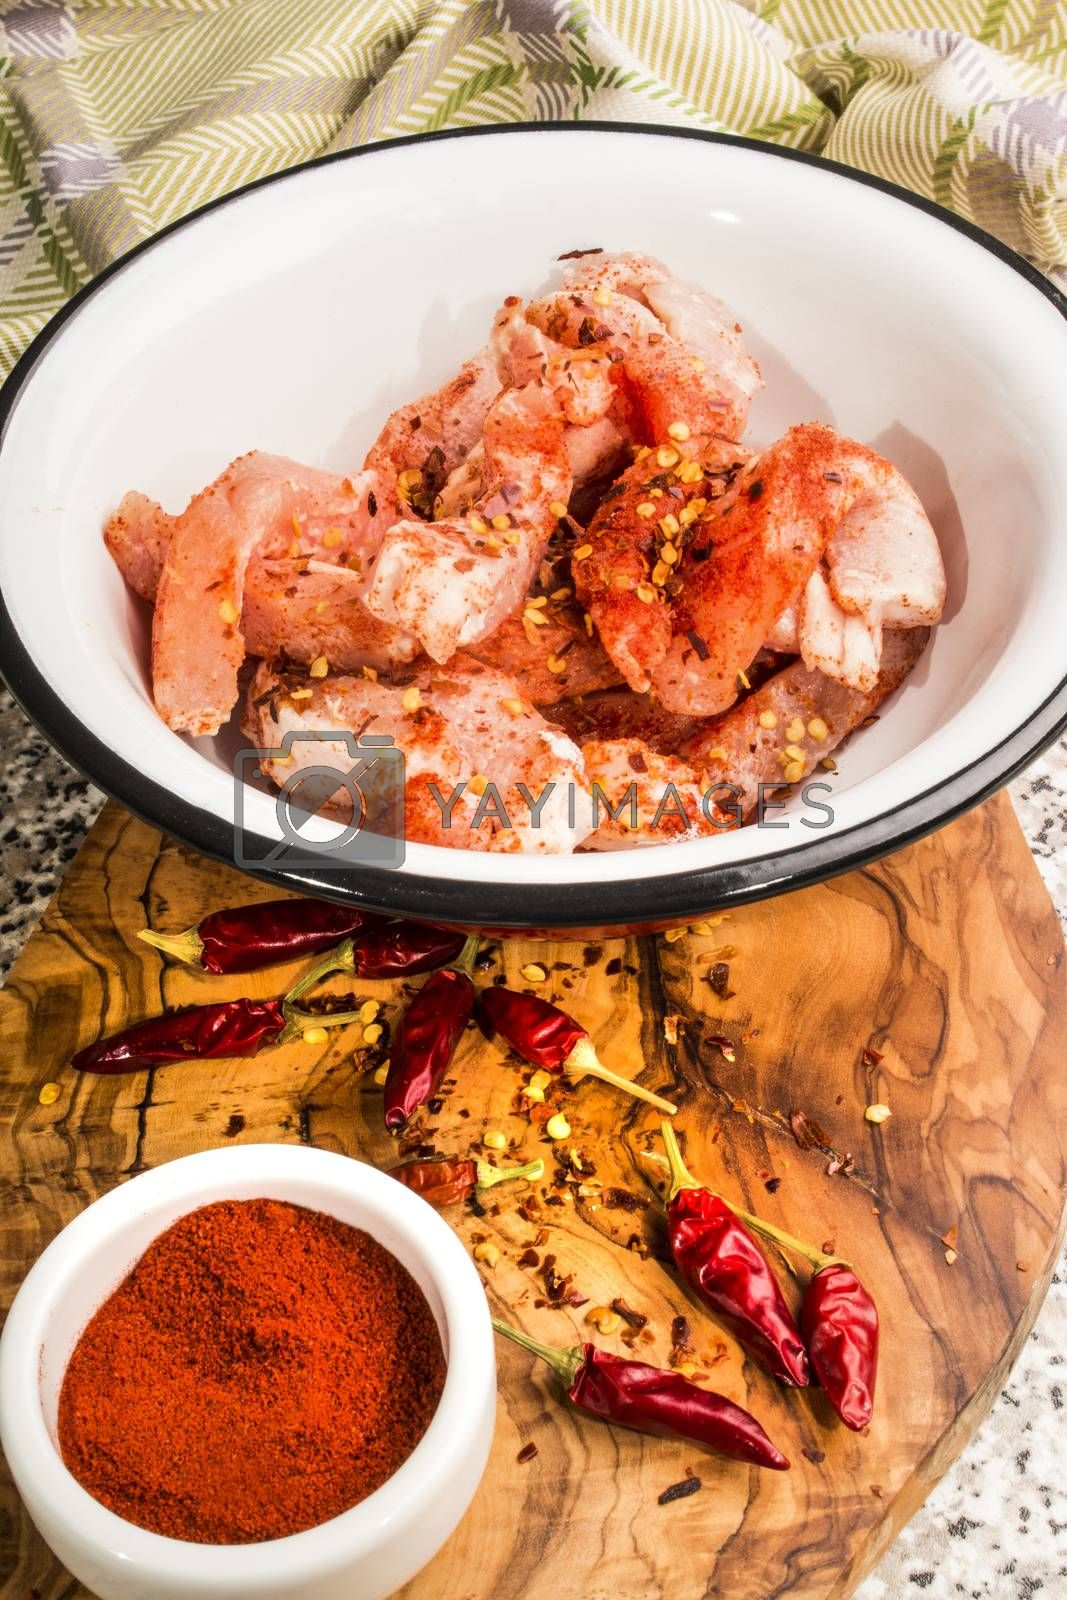 raw pork stripes well coated with flour,  paprika powder and crushed chili flakes in an enamel bowl